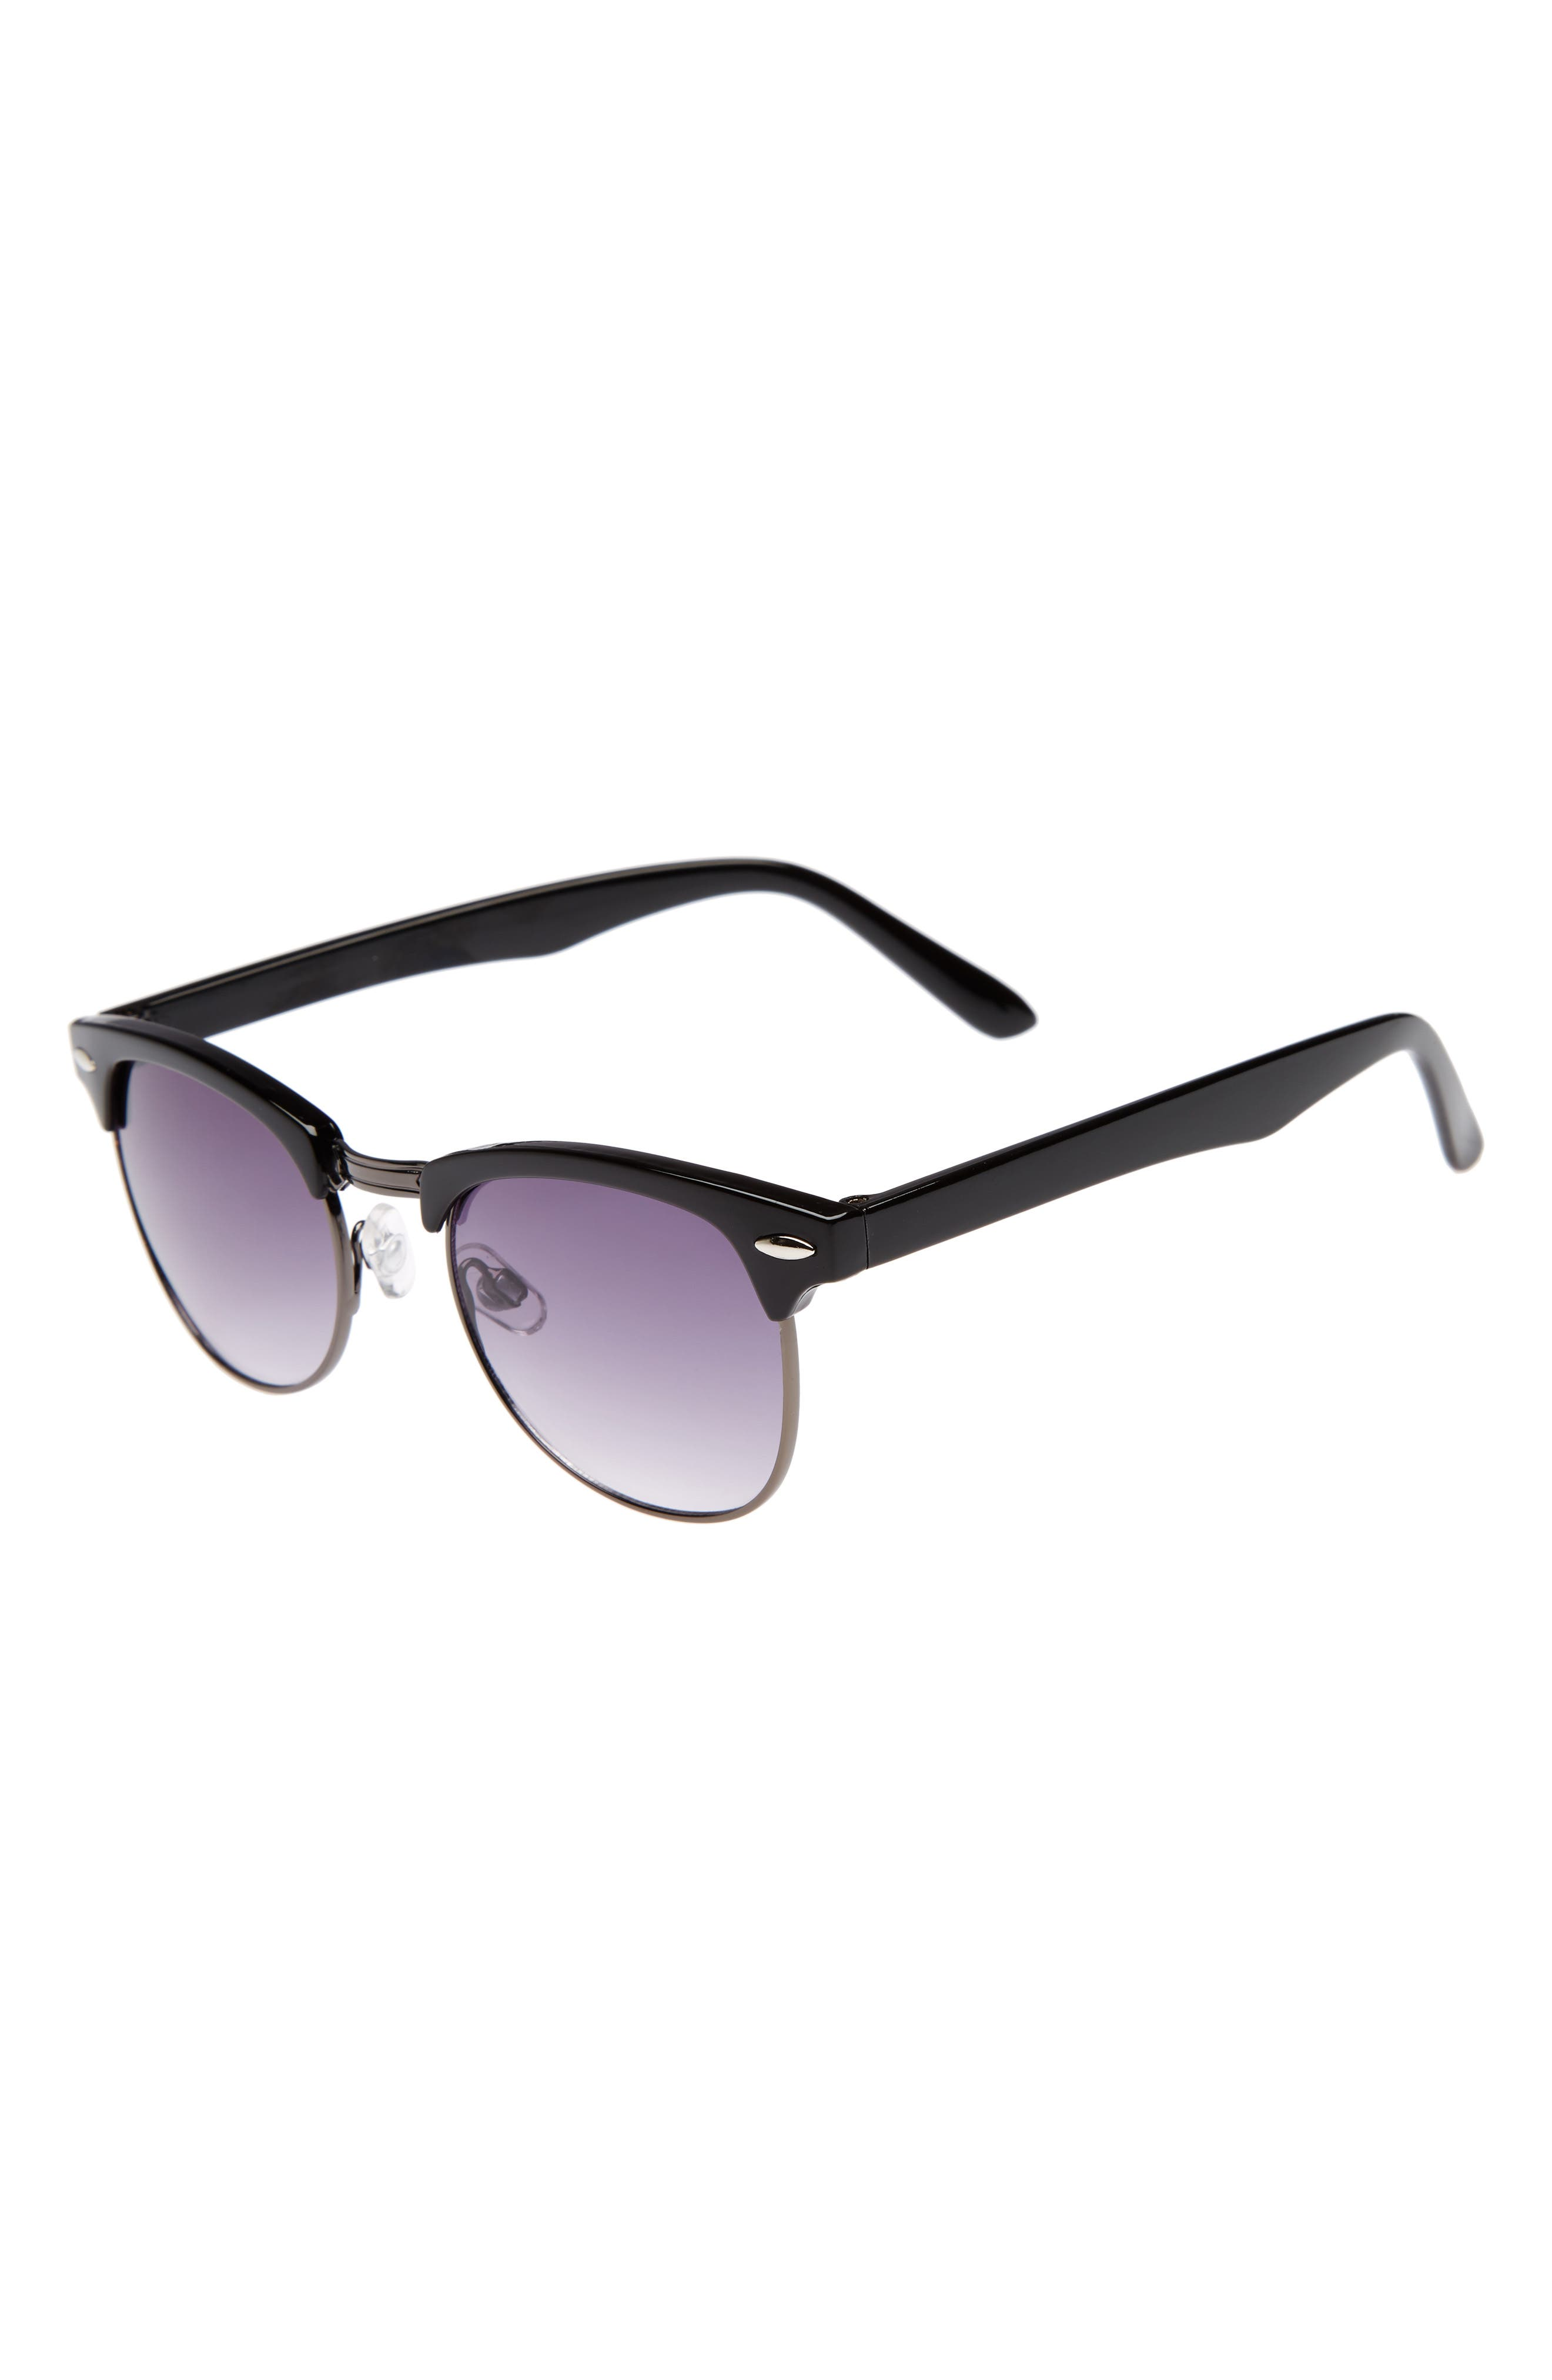 Main Image - Fantas Eyes Horn Rimmed Sunglasses (Boys)